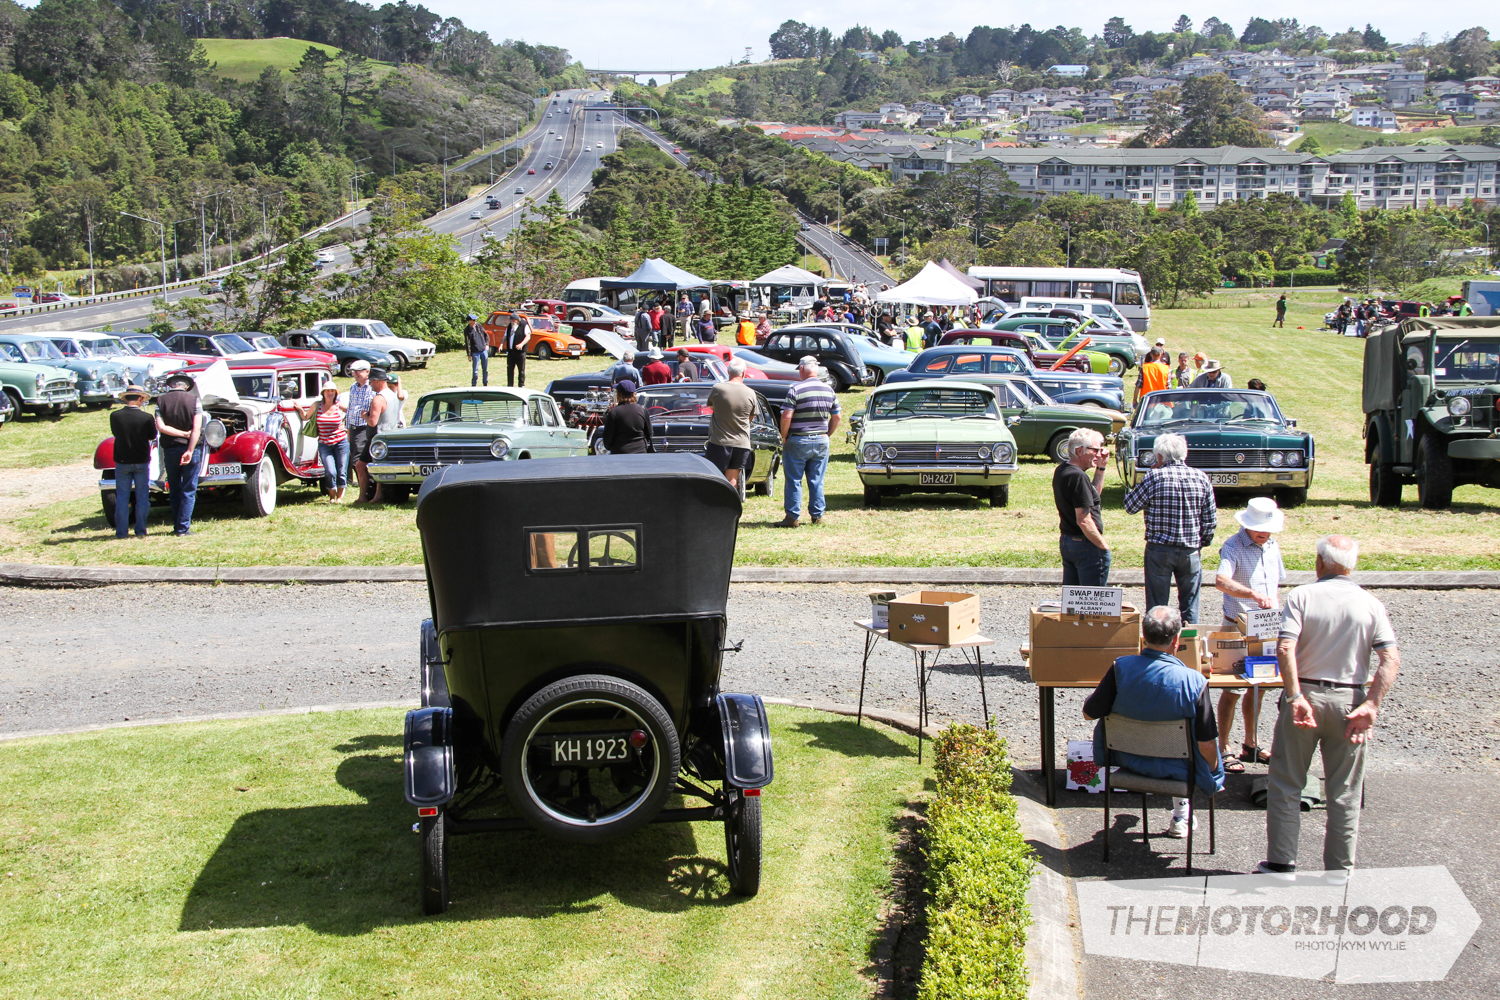 The North Shore Vintage Car Club's facility is located just off themotorway near Albany